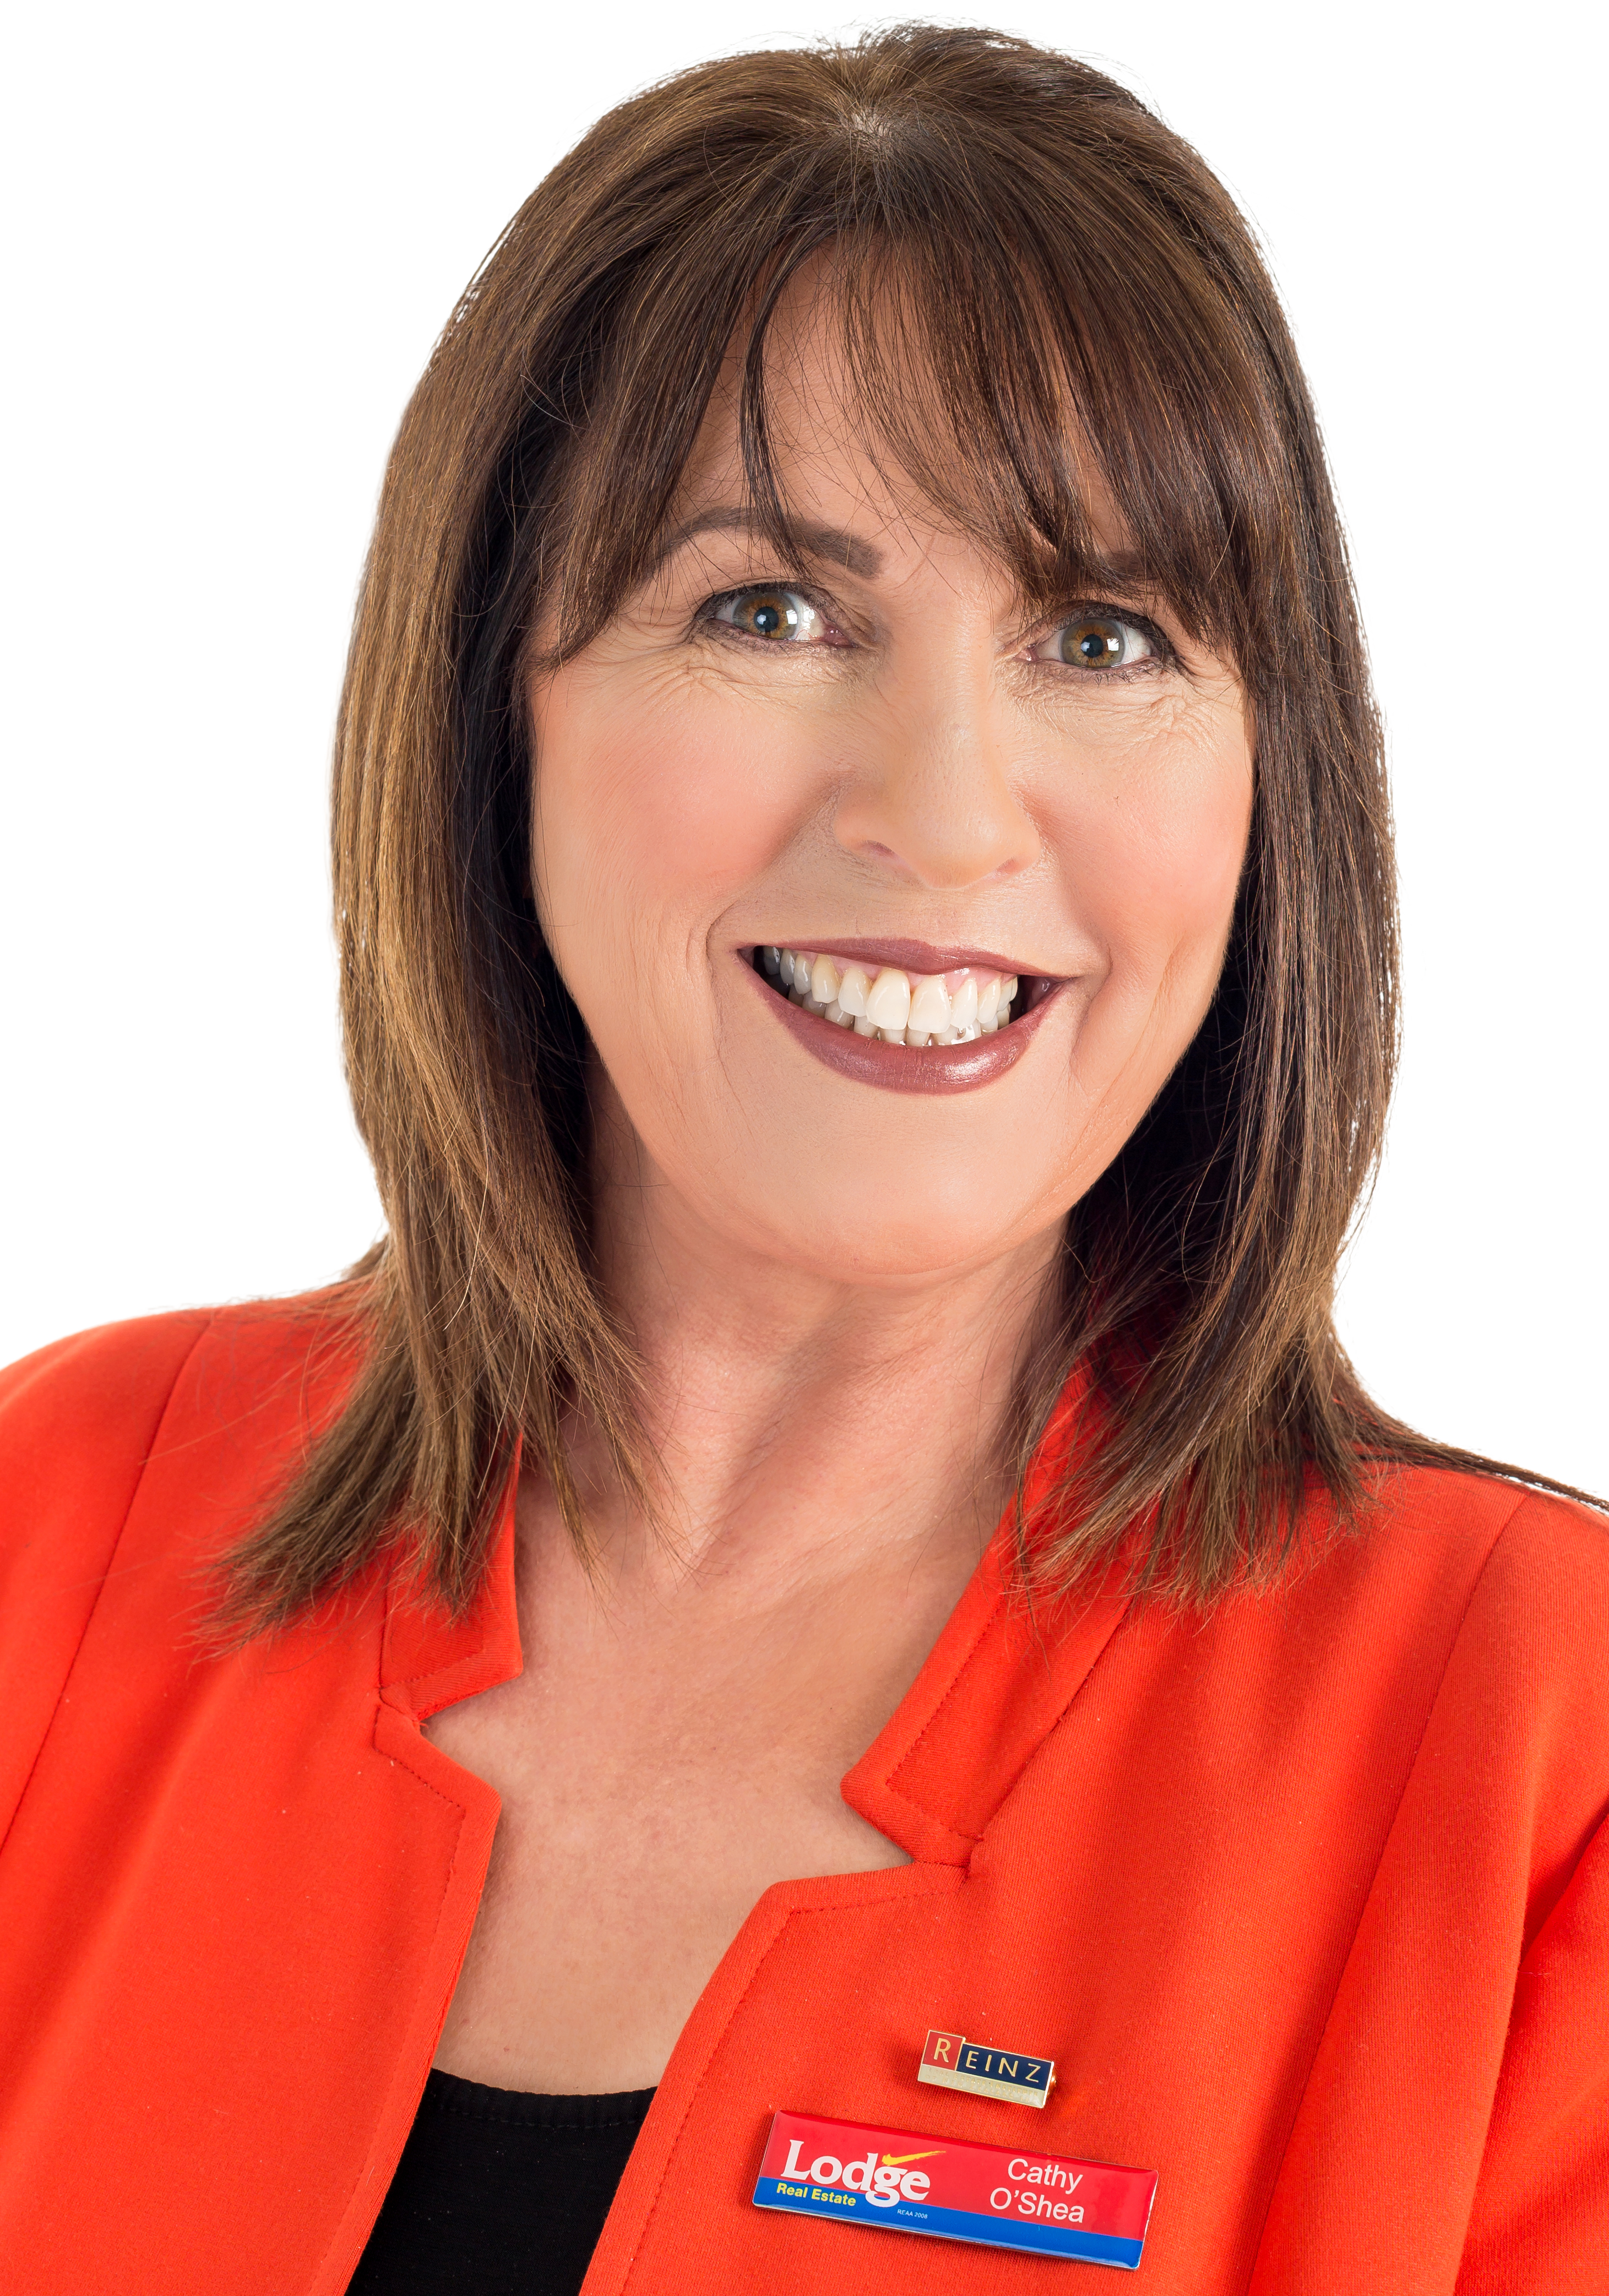 Cathy O'Shea #1 Lodge Agent August 2019 Residential & Lifestyle Team